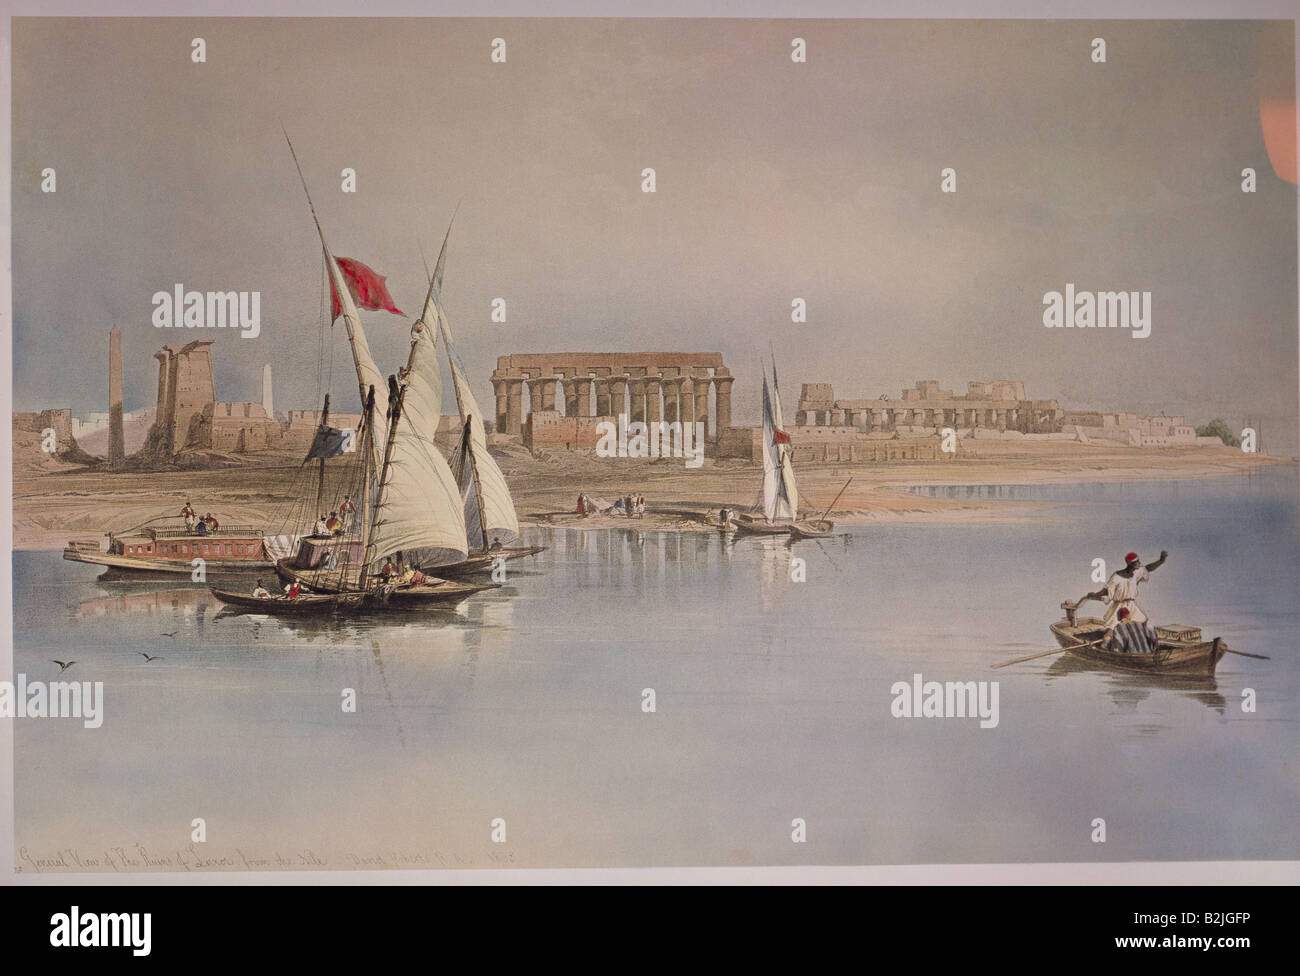 geography / travel, Egypt, Luxor, city views / cityscapes, Ruins of Luxor, coloured lithograph, by David Roberts, - Stock Image